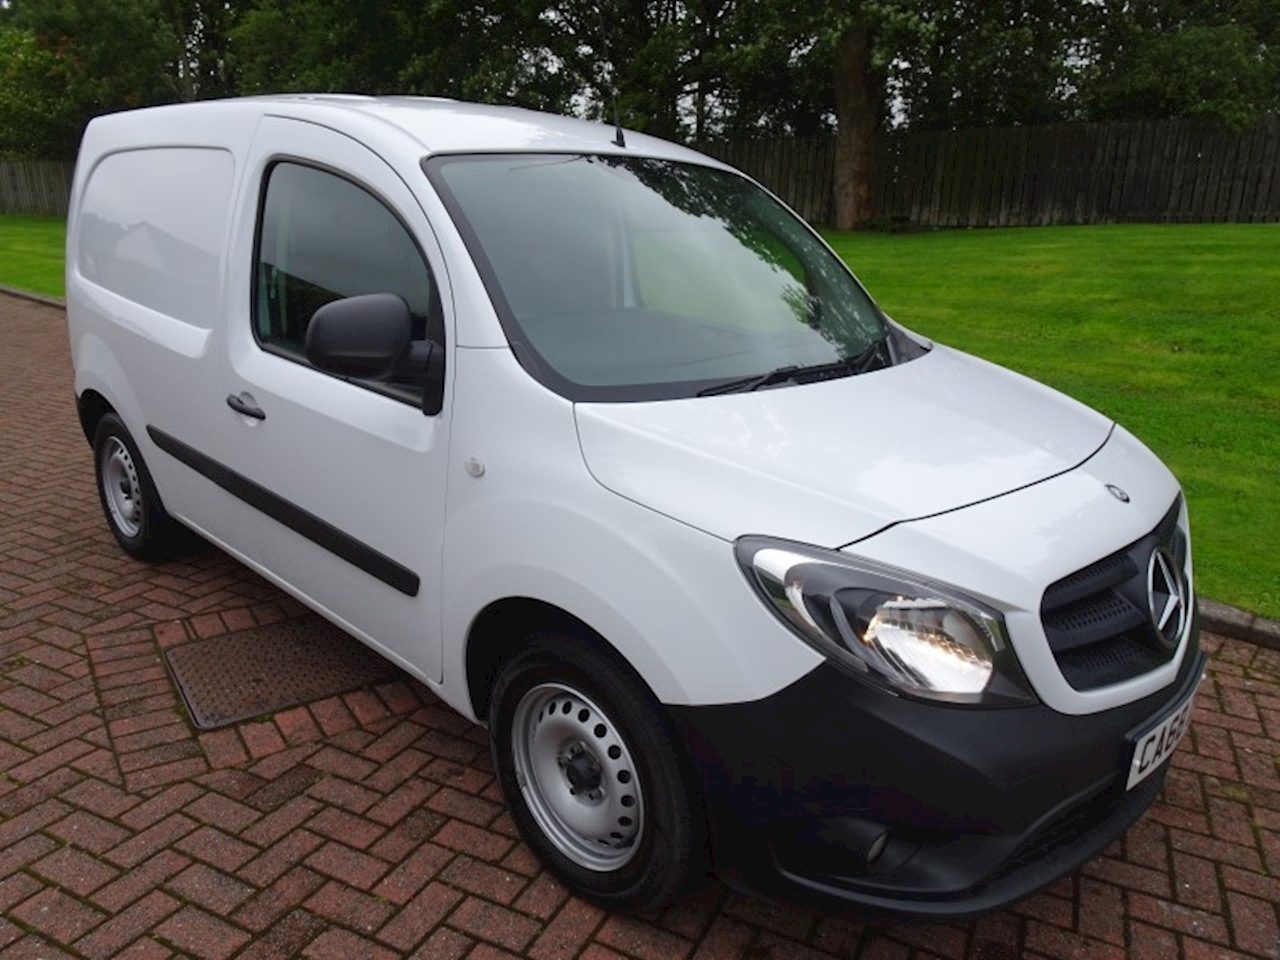 Mercedes-Benz Citan 1.5 109 CDi BlueEFFICIENCY Panel Van 5dr Diesel Manual  EU5 (s/s) (90 ps) 1.5 5dr Panel Van Manual Diesel